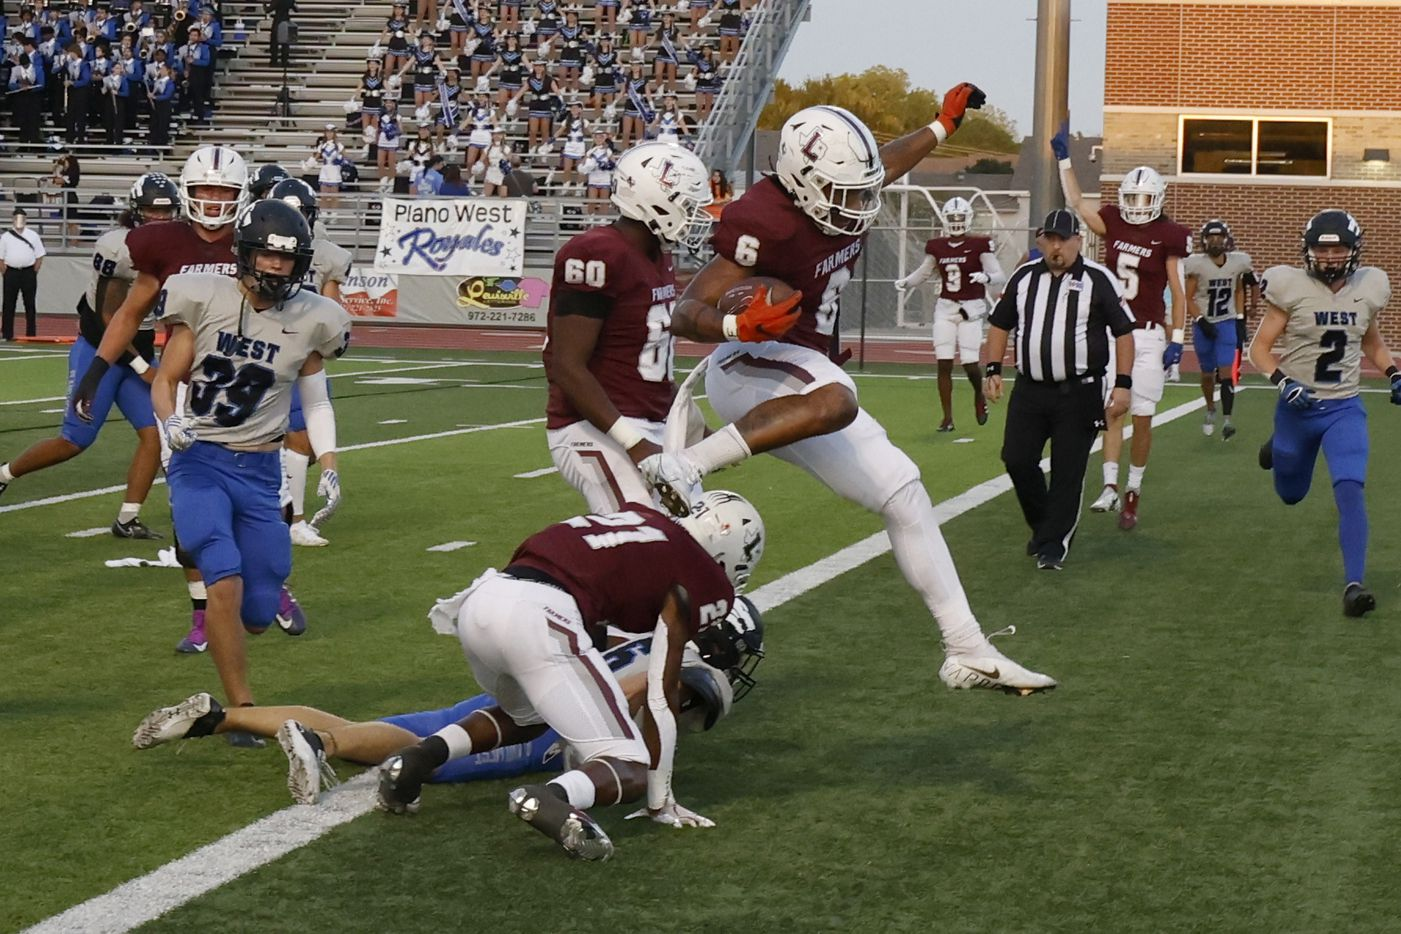 Lewisville's Damien Martinez leaps over a Plano West defender to score a touchdown during the first half of a high school football game in Lewisville, Texas on Friday, Sept. 24, 2021. (Michael Ainsworth/Special Contributor)